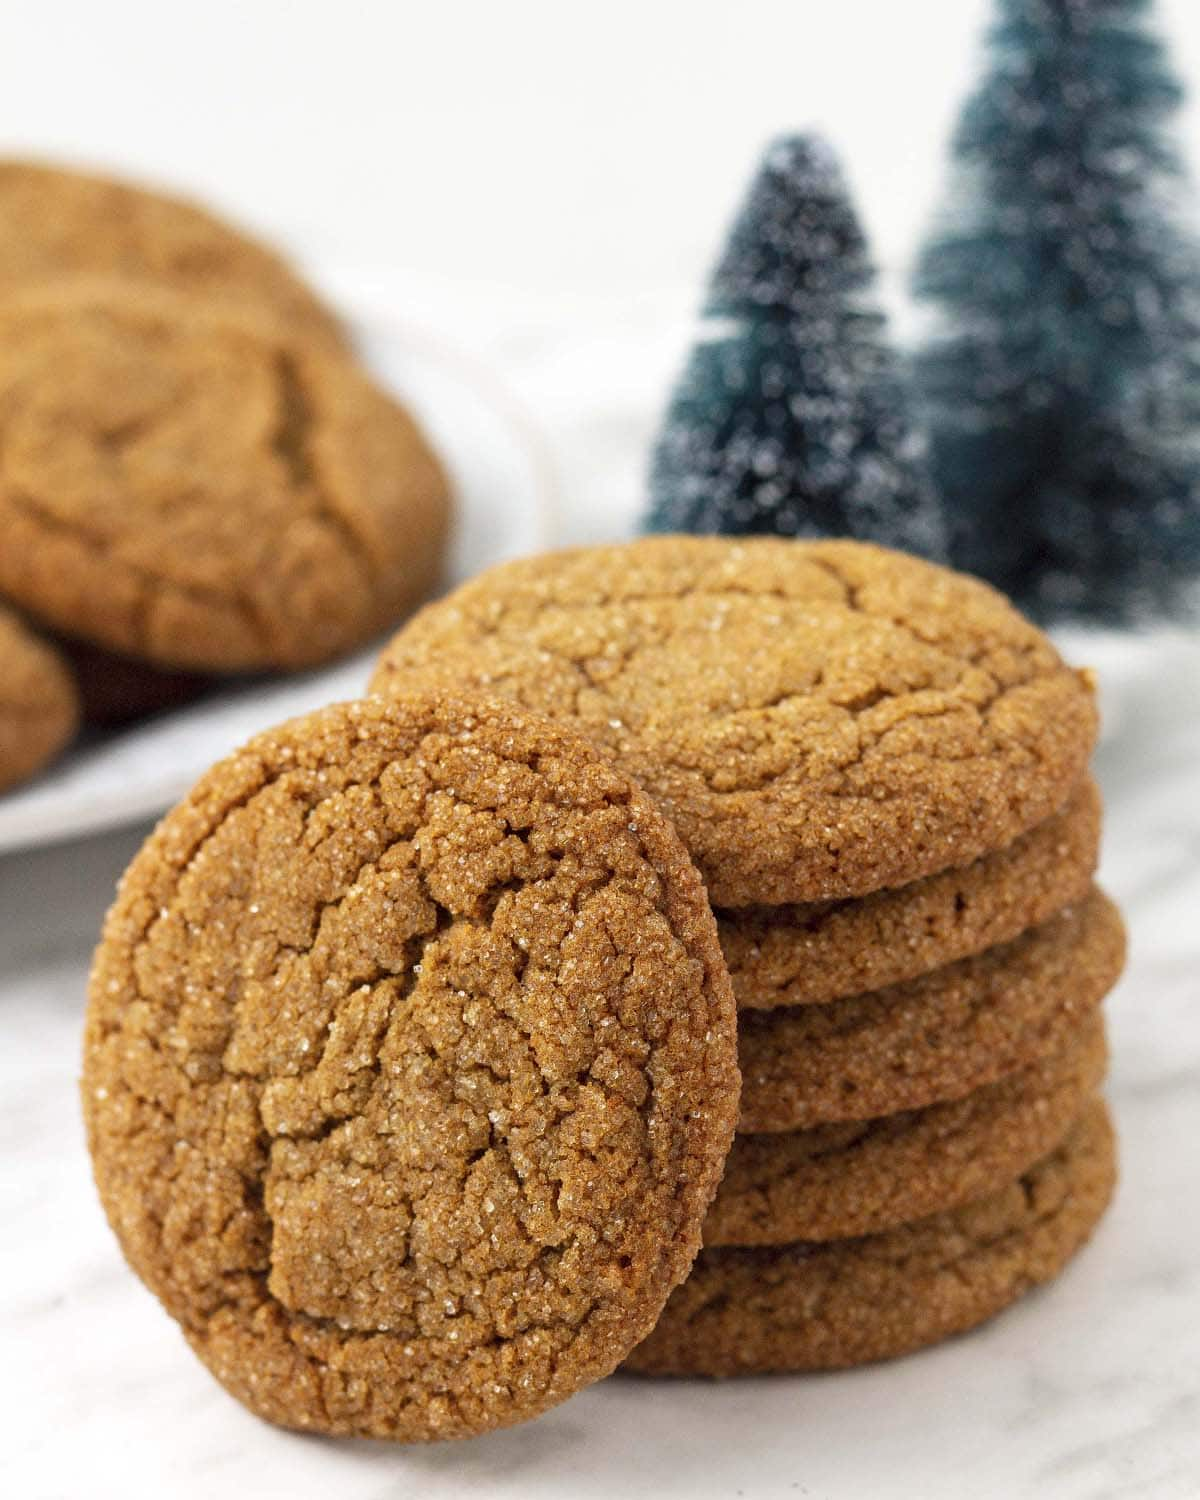 Six gluten free dairy free ginger molasses cookies stacked on a table, one cookie is leaning against the stack.